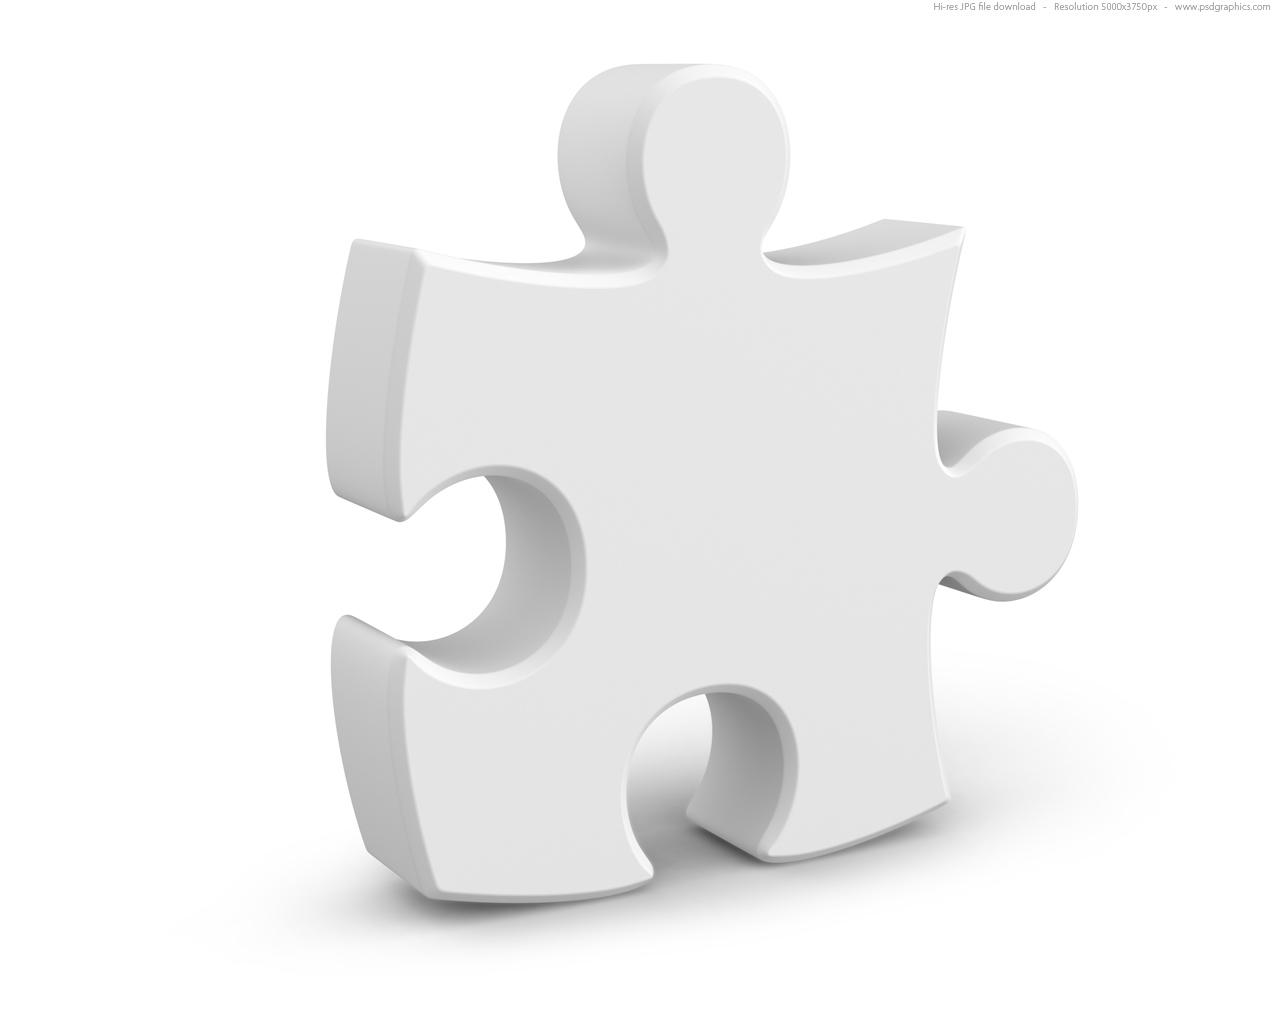 Single jigsaw puzzle piece, 3D symbol.